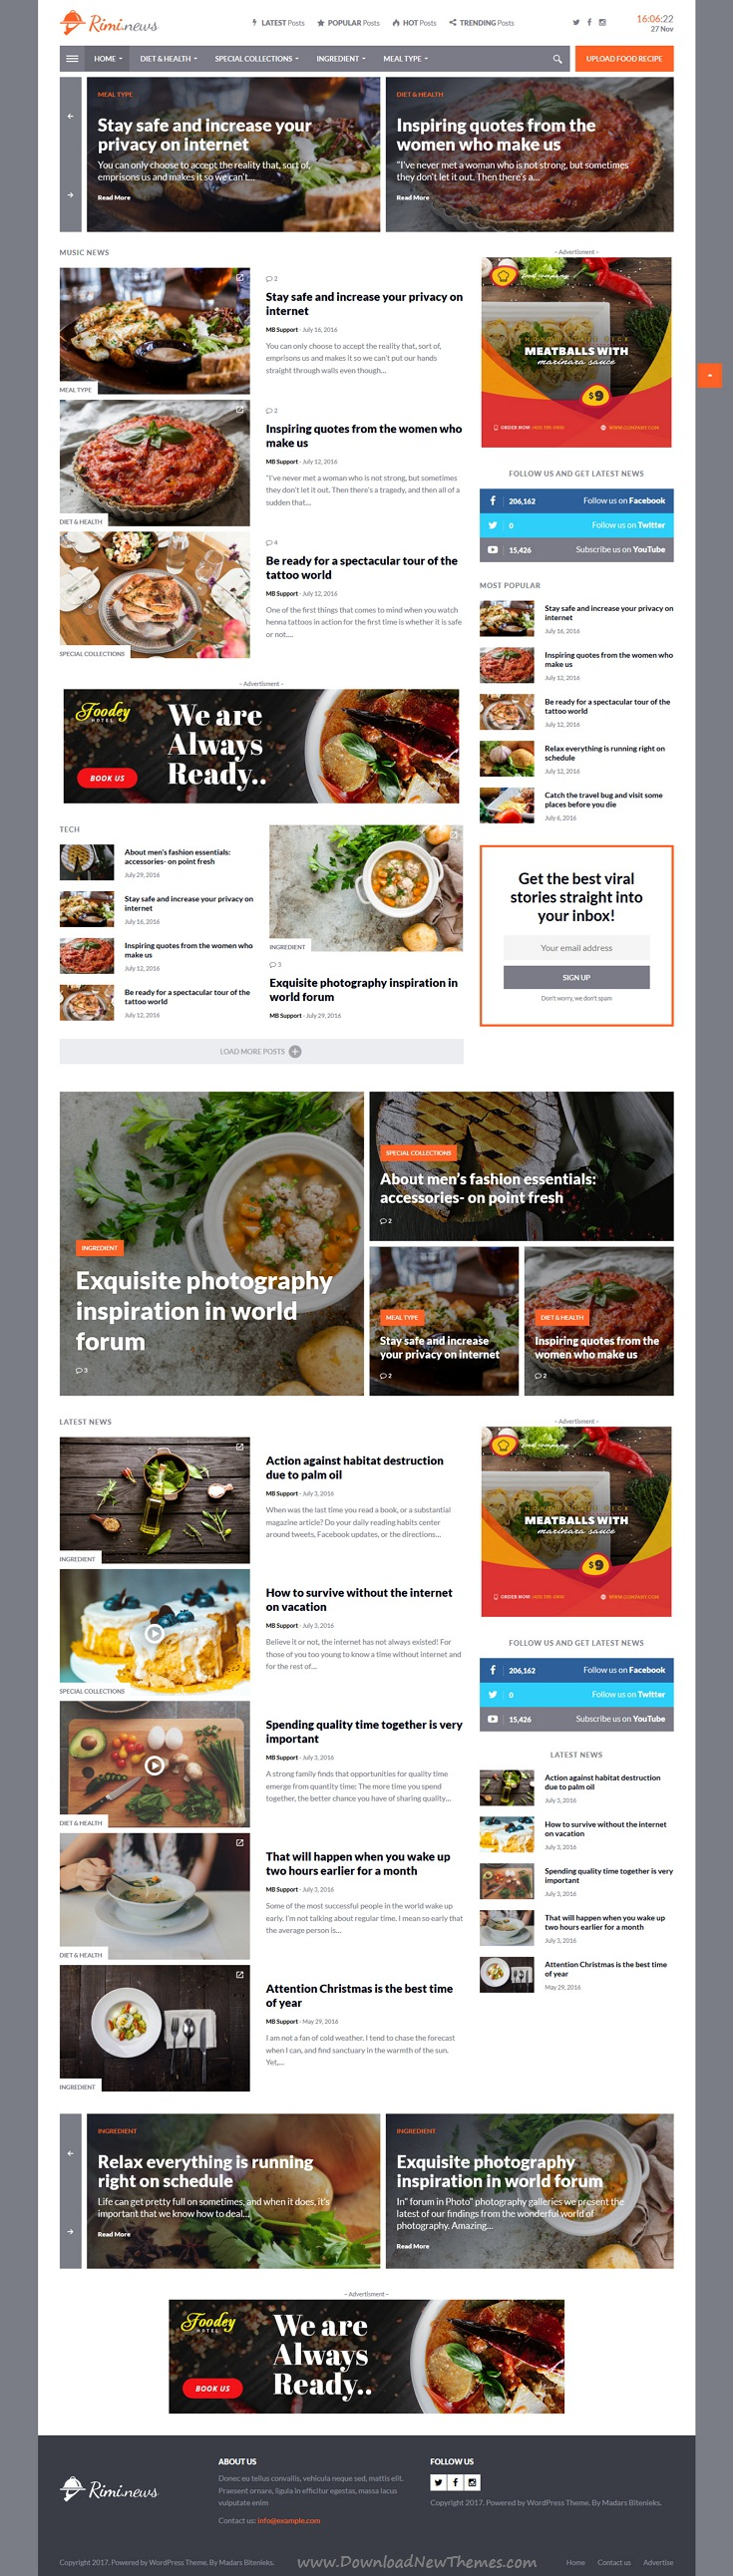 Rimi wordpress theme for food blog and magazine forumfinder Image collections